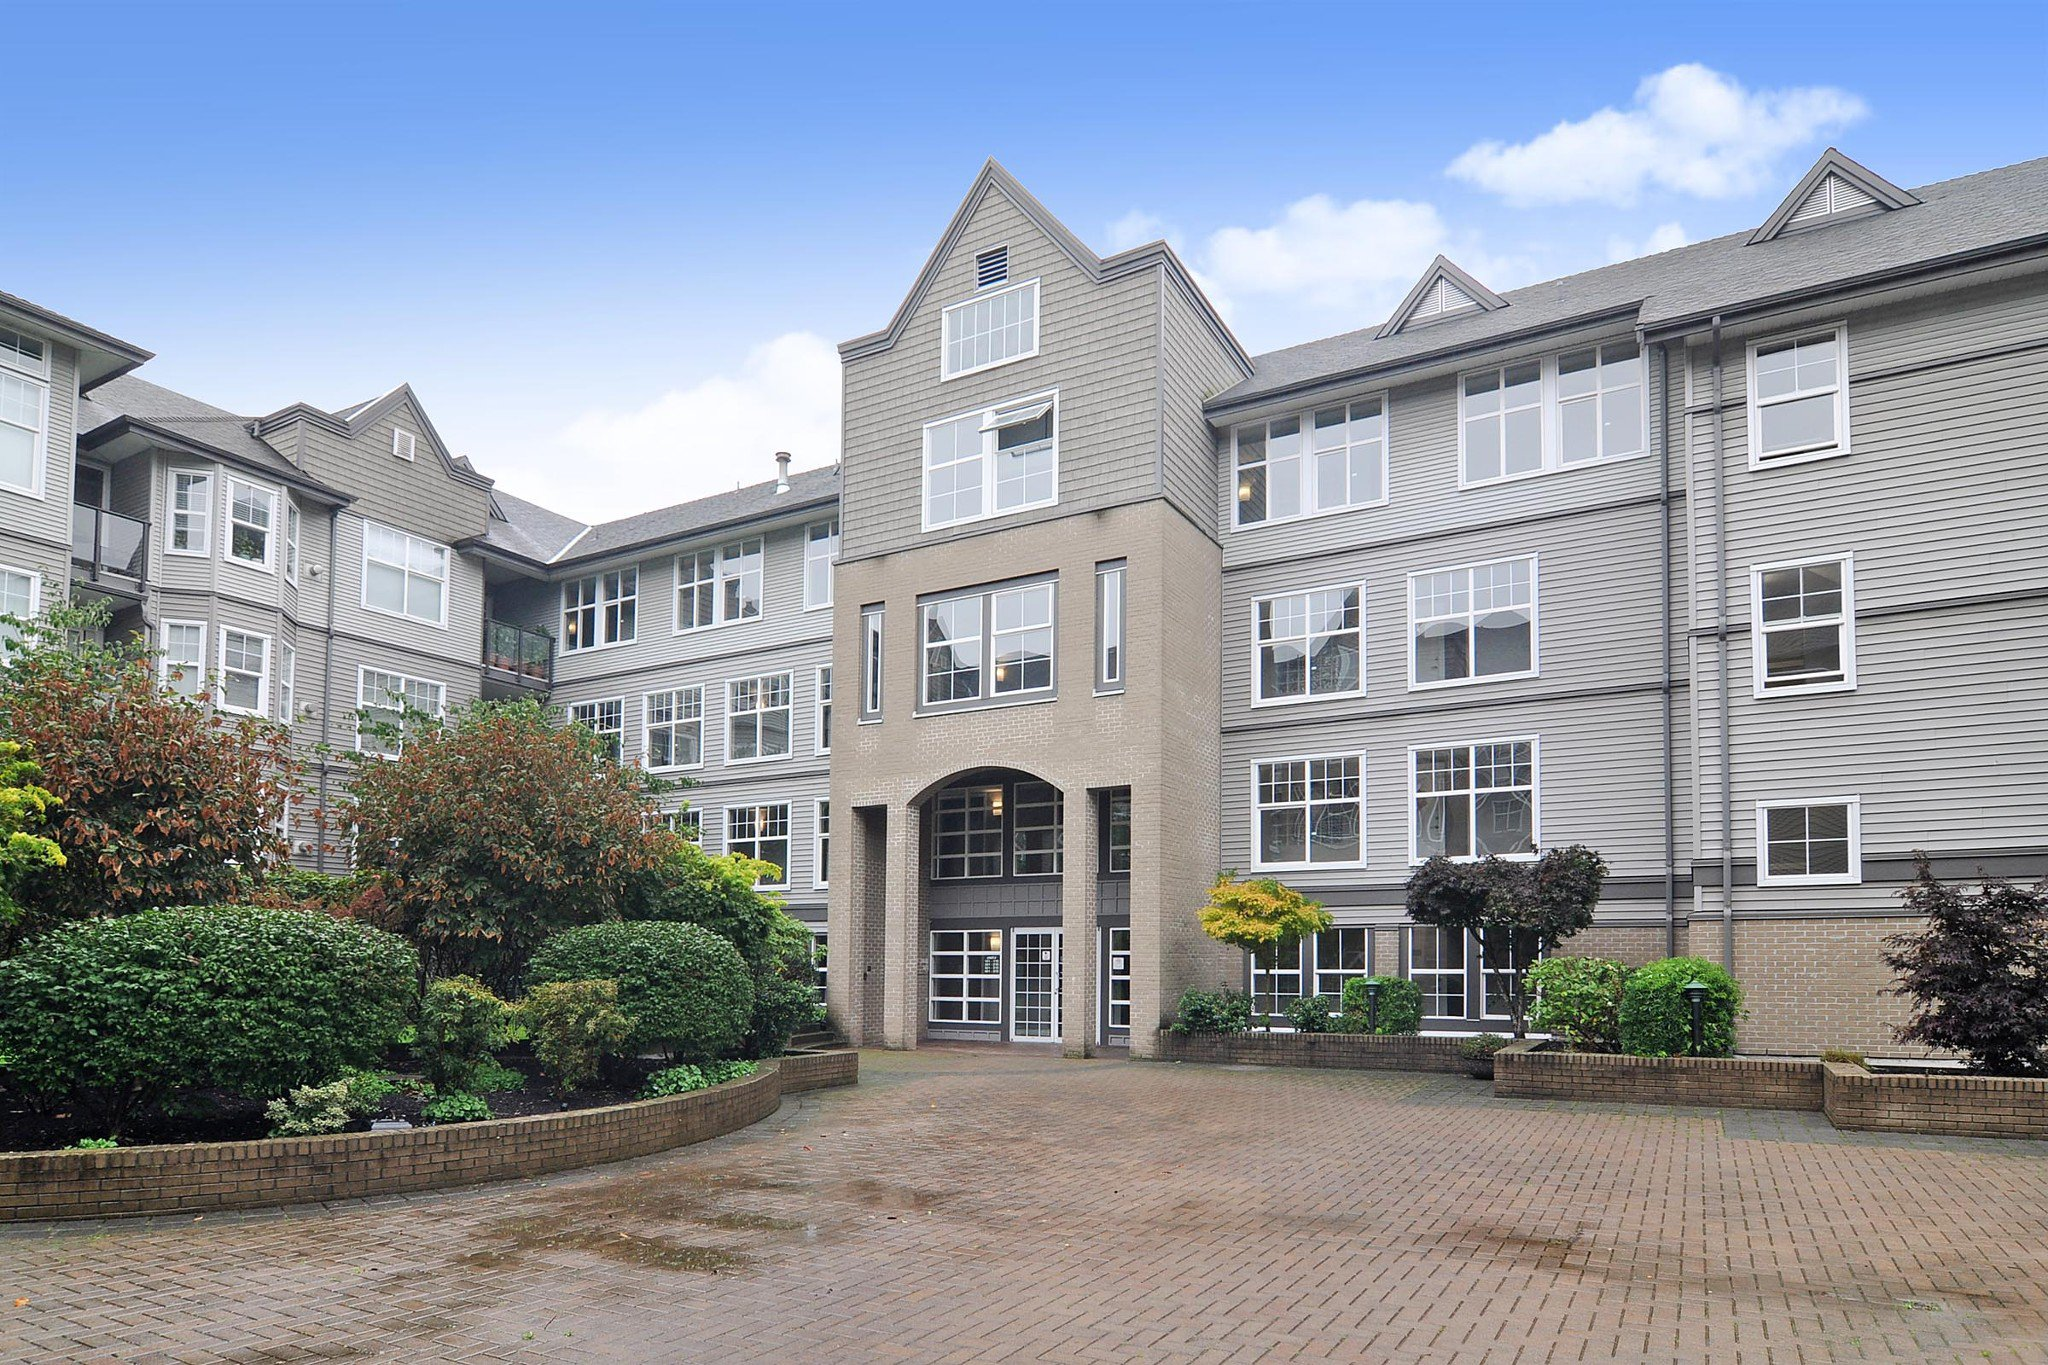 Main Photo: 308 20200 56 AVENUE in Langley: Langley City Condo for sale : MLS®# R2509709